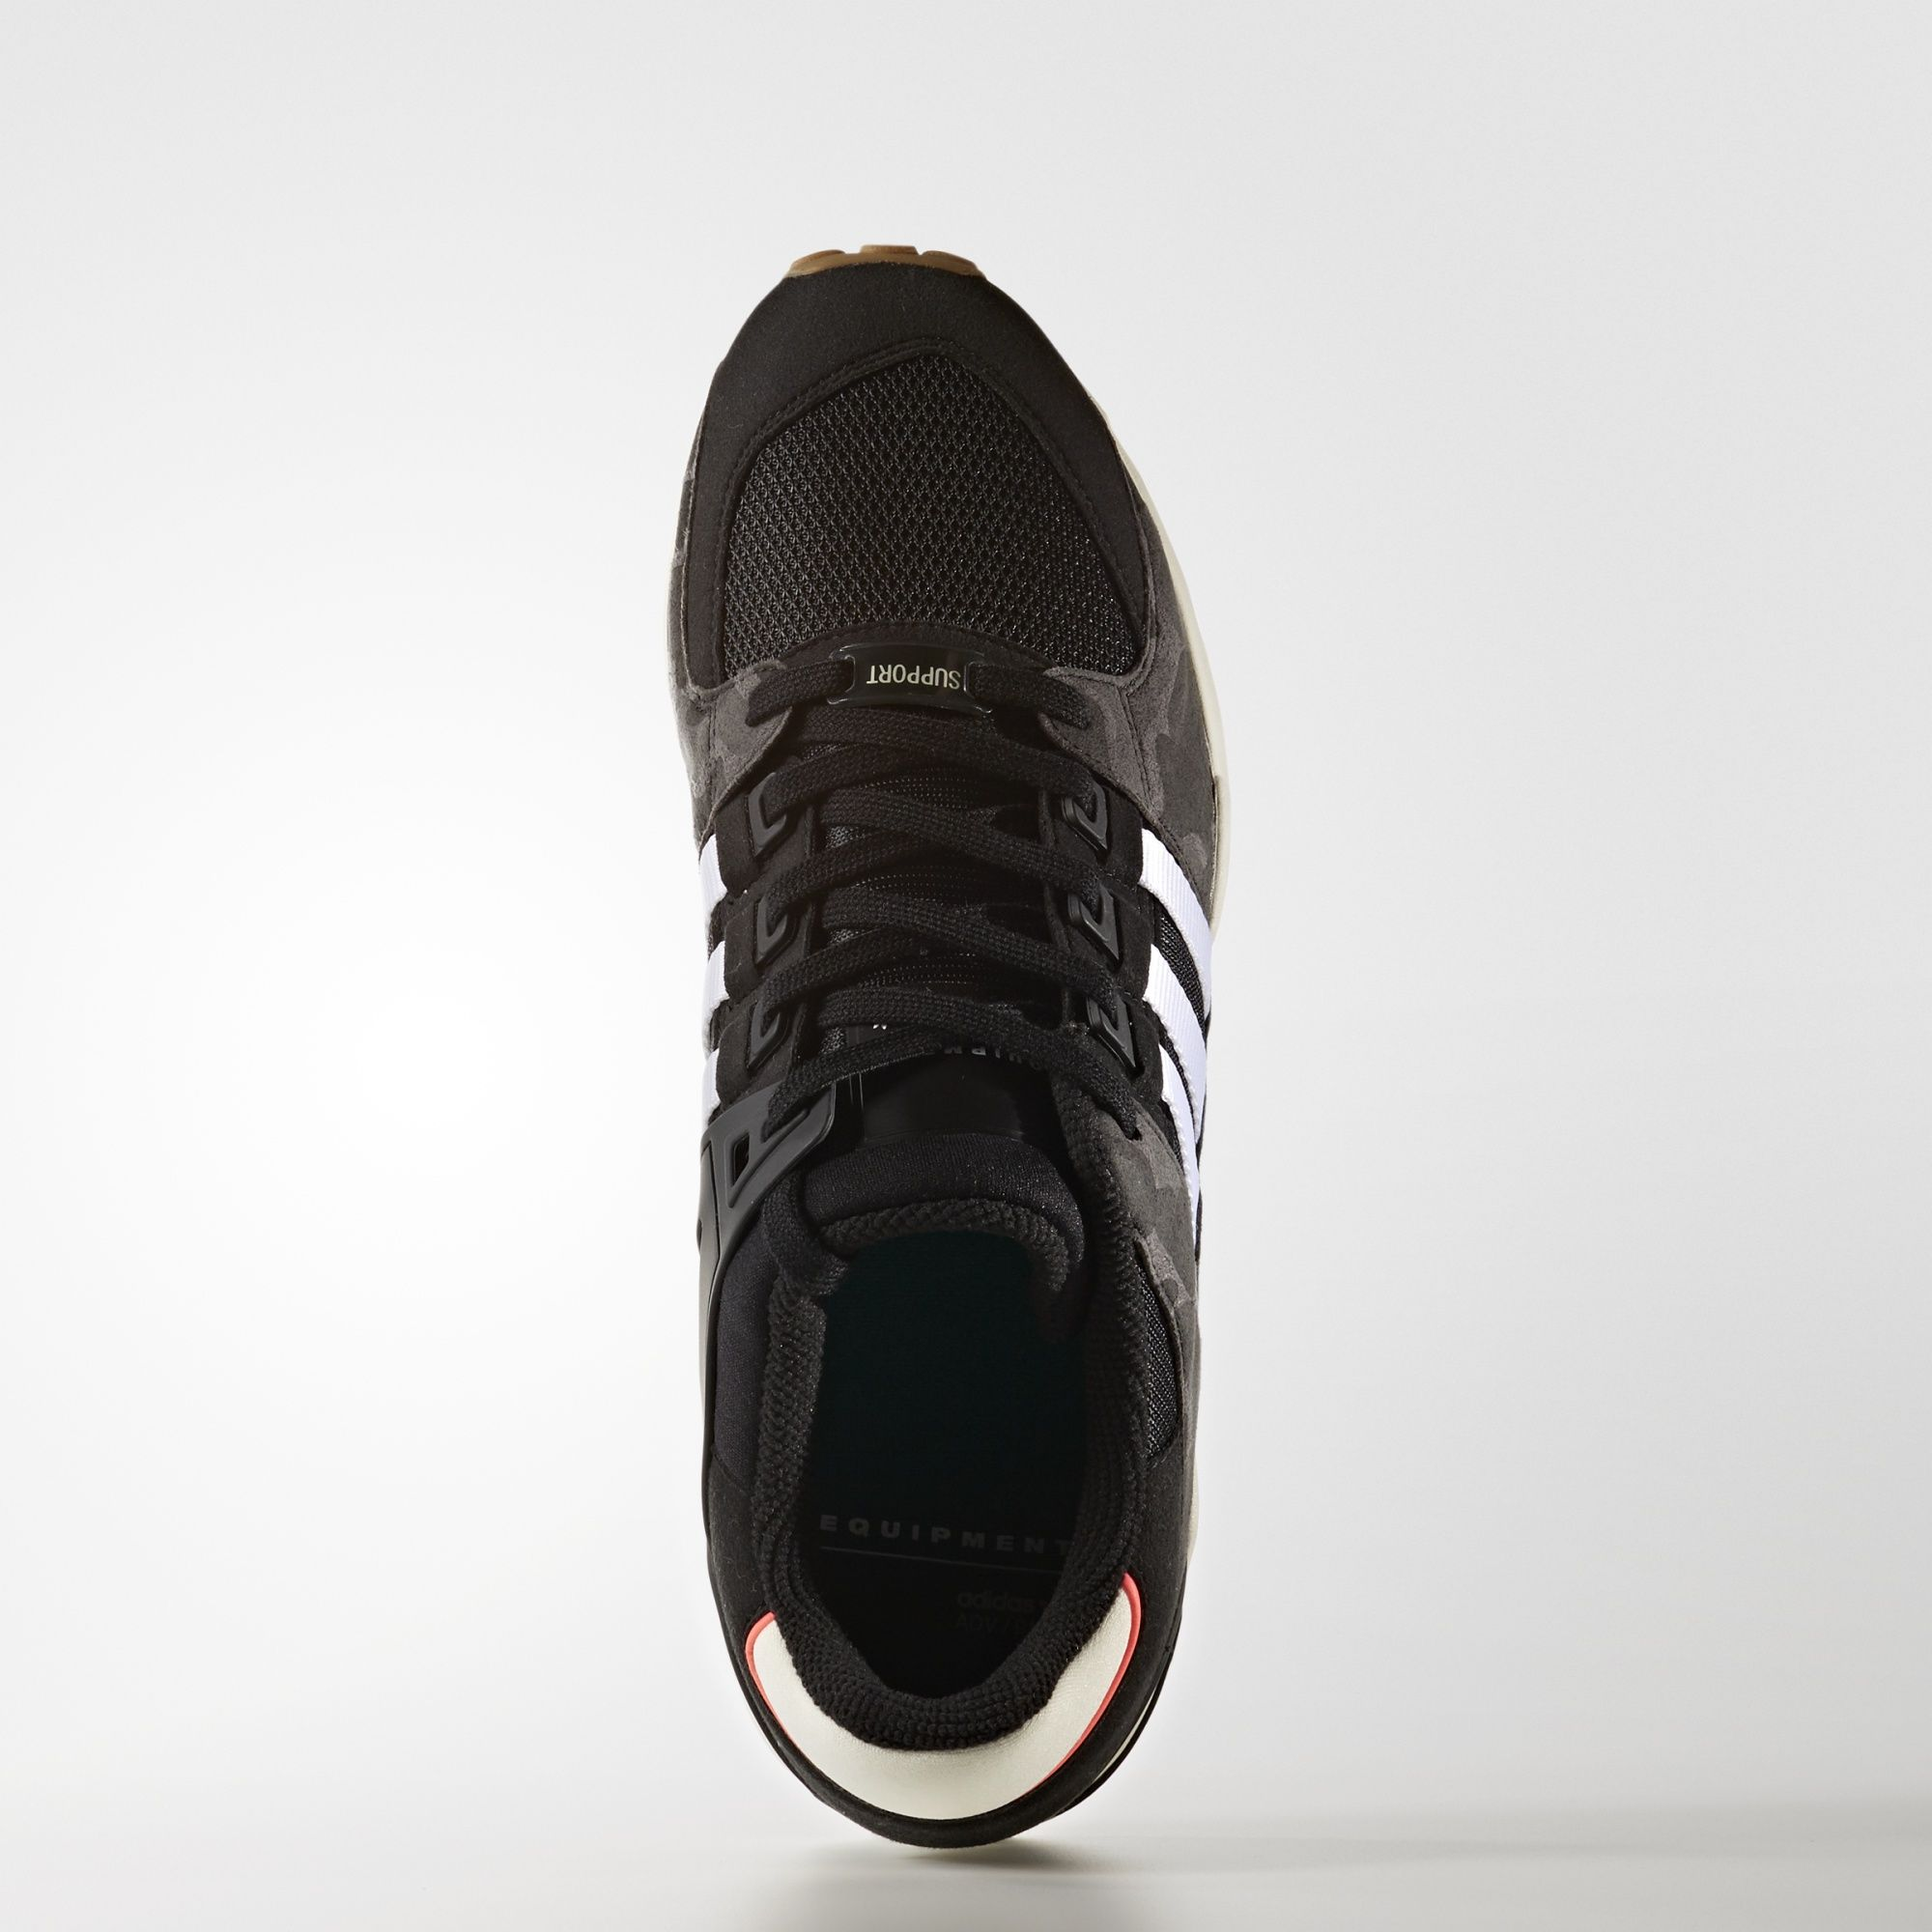 adidas EQT Support RF Black Camo BB1324 1